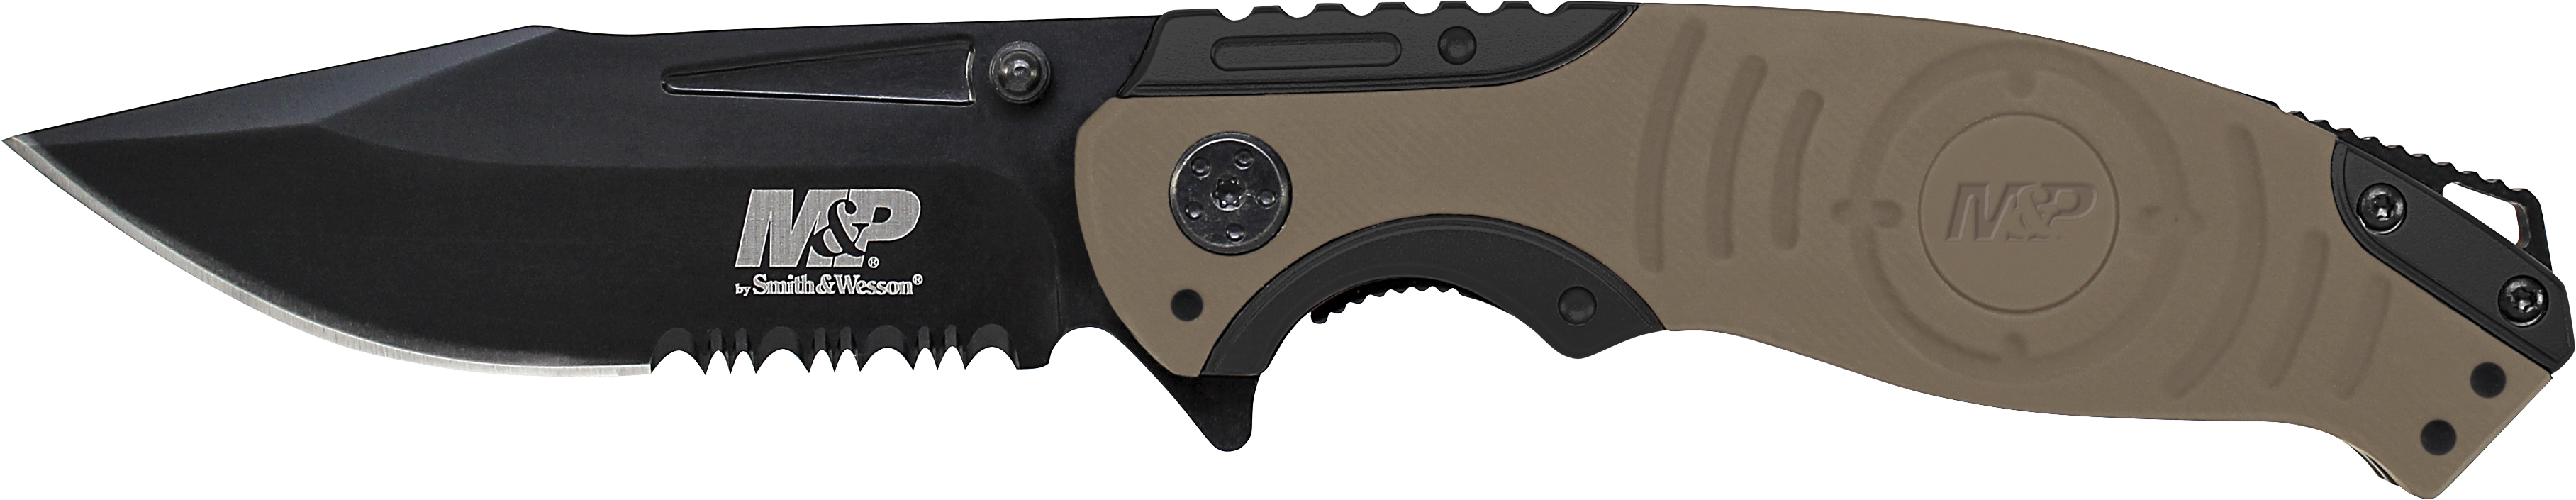 SWMP13GLS - Smith & Wesson Liner Lock, 8Cr13MoV Drop Point Blade, Thumb Knobs, Index Flipper, Gold/Black Handle